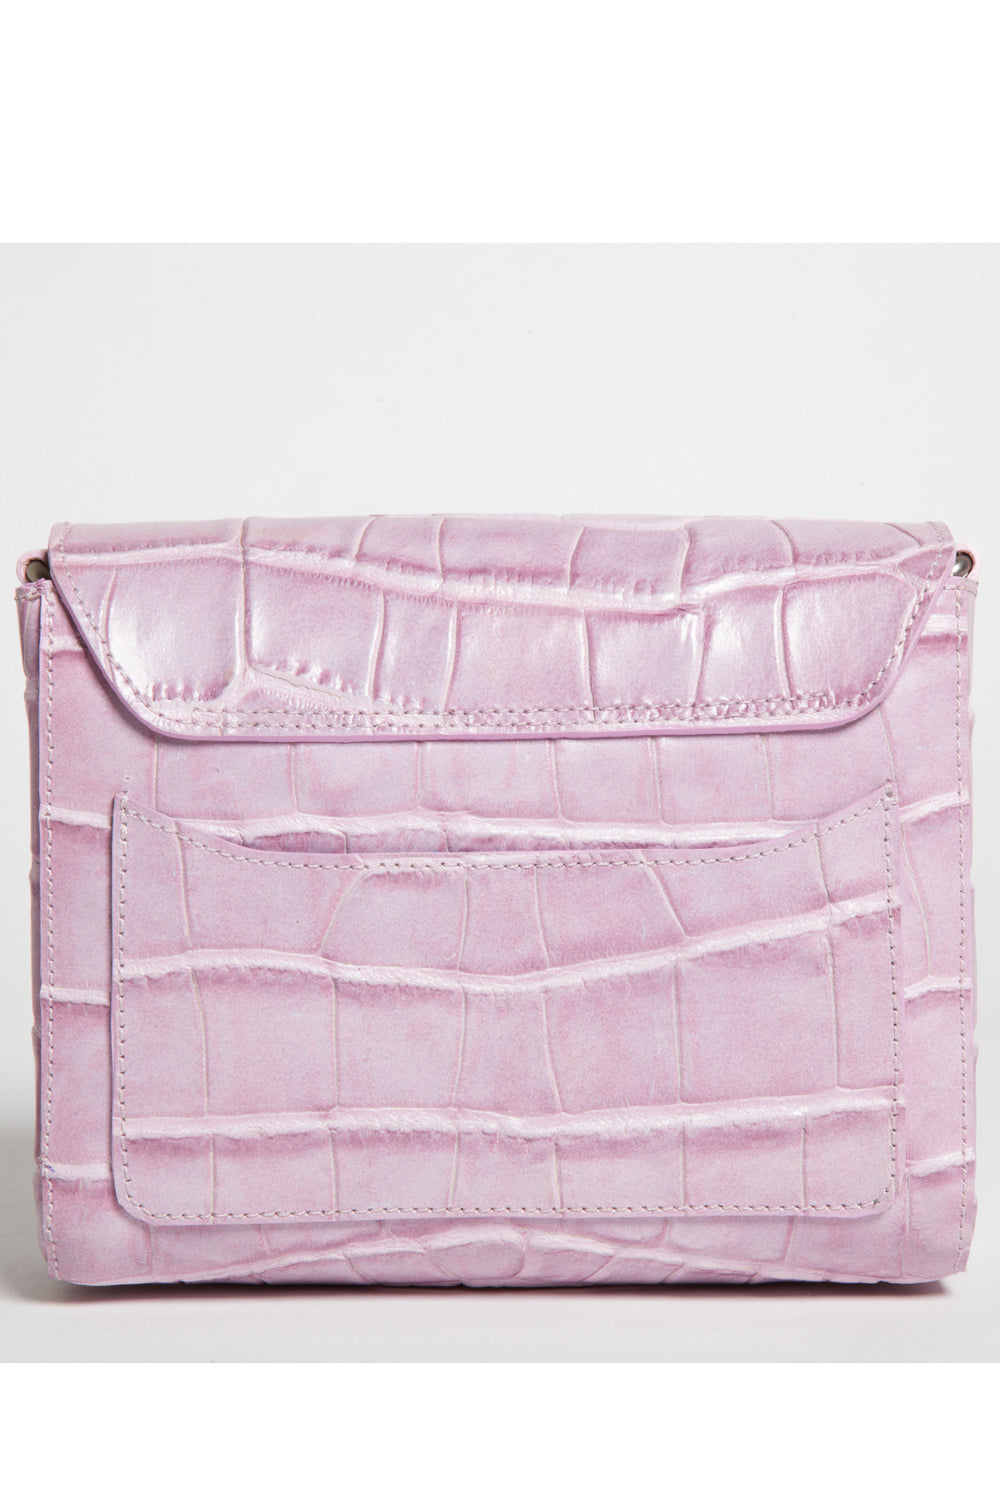 'Gema' Small Shoulder Bag in Sweet Lilac, Croc-Emboss Leather | Mel Boteri | Back View